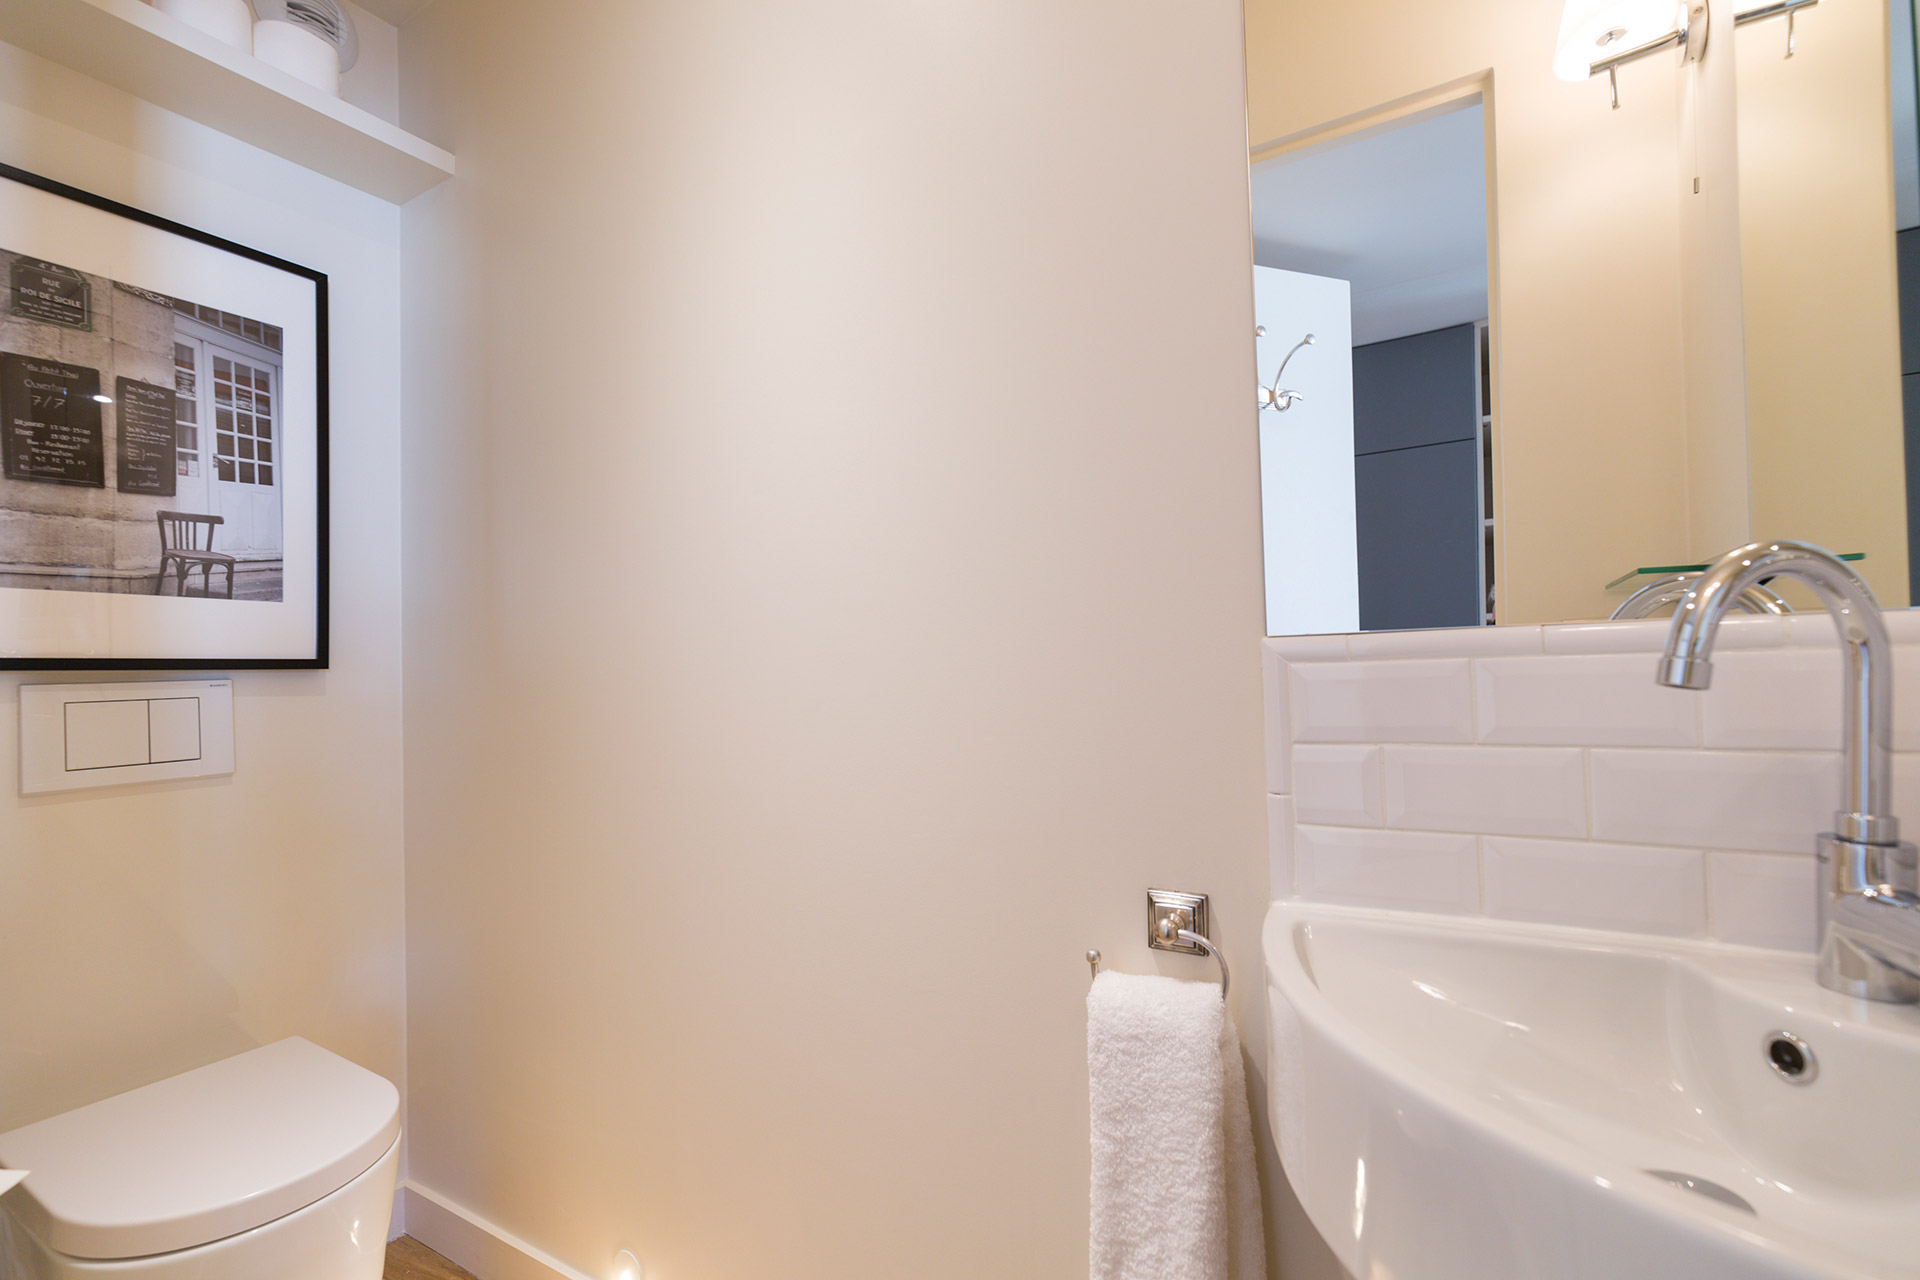 Separate half bath next to the kitchen in the Loupiac vacation rental offered by Paris Perfect